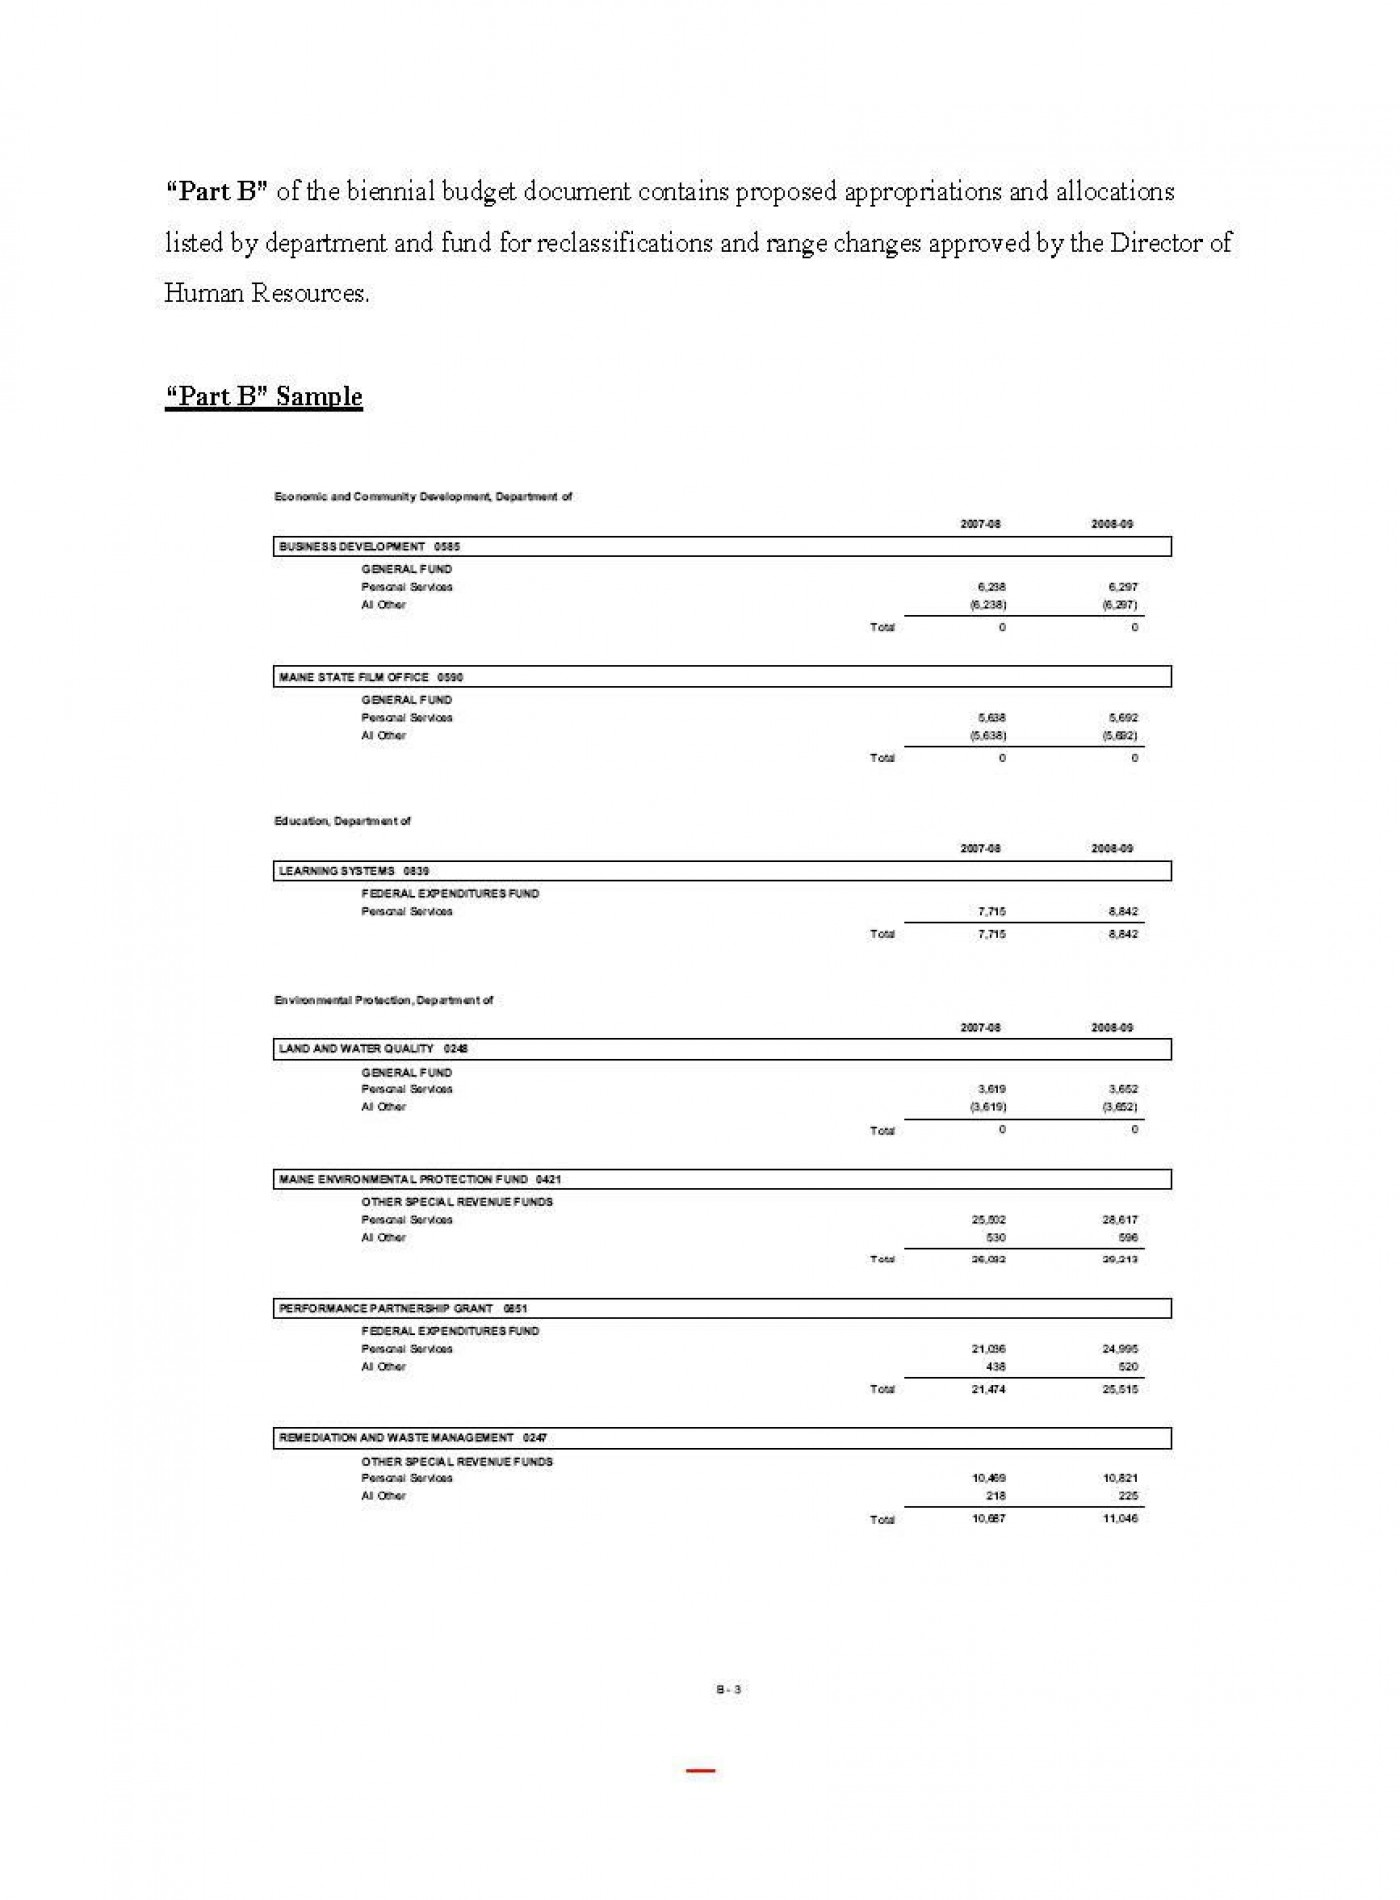 005 Phenomenal Line Item Budget Sample Photo  Church For Grant Proposal Format1400